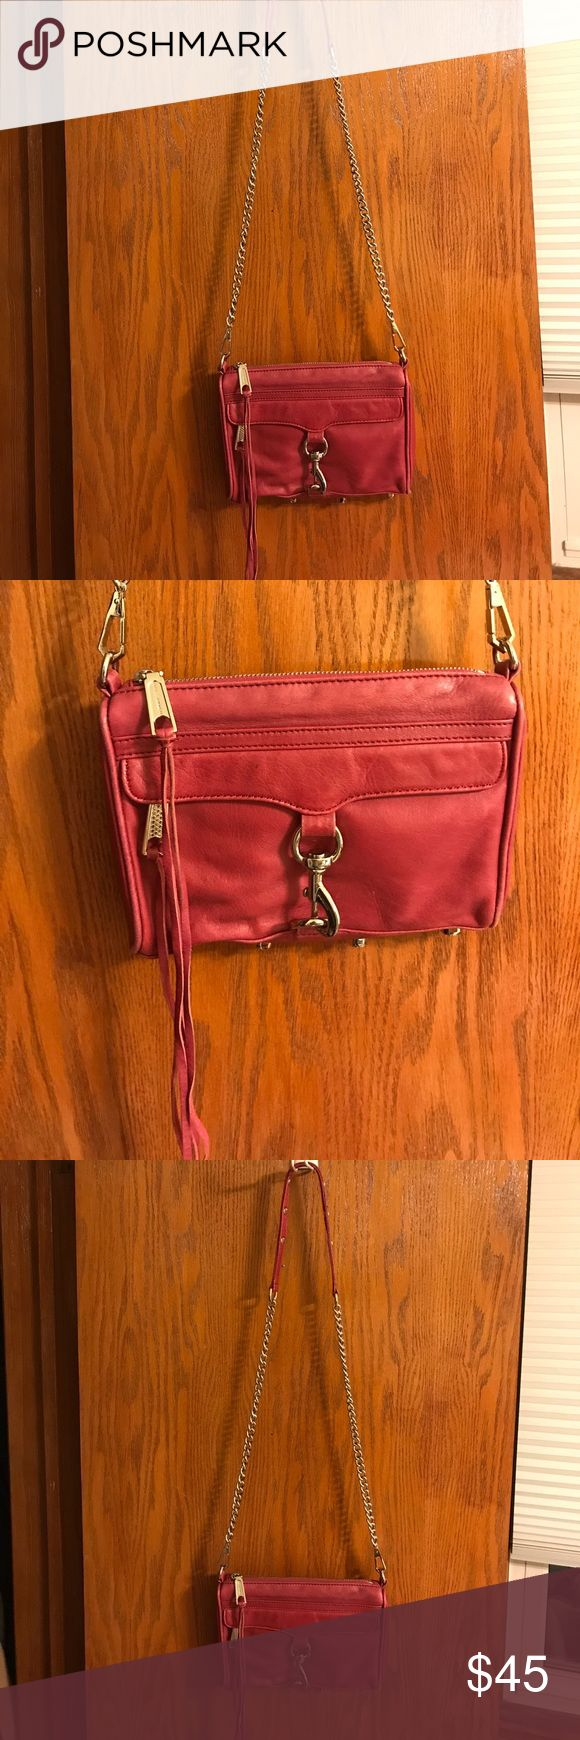 Rebecca Minkoff Mini MAC Bag Small leather crossbody bag in wine/berry color (comes with original dust bag) Rebecca Minkoff Bags Crossbody Bags